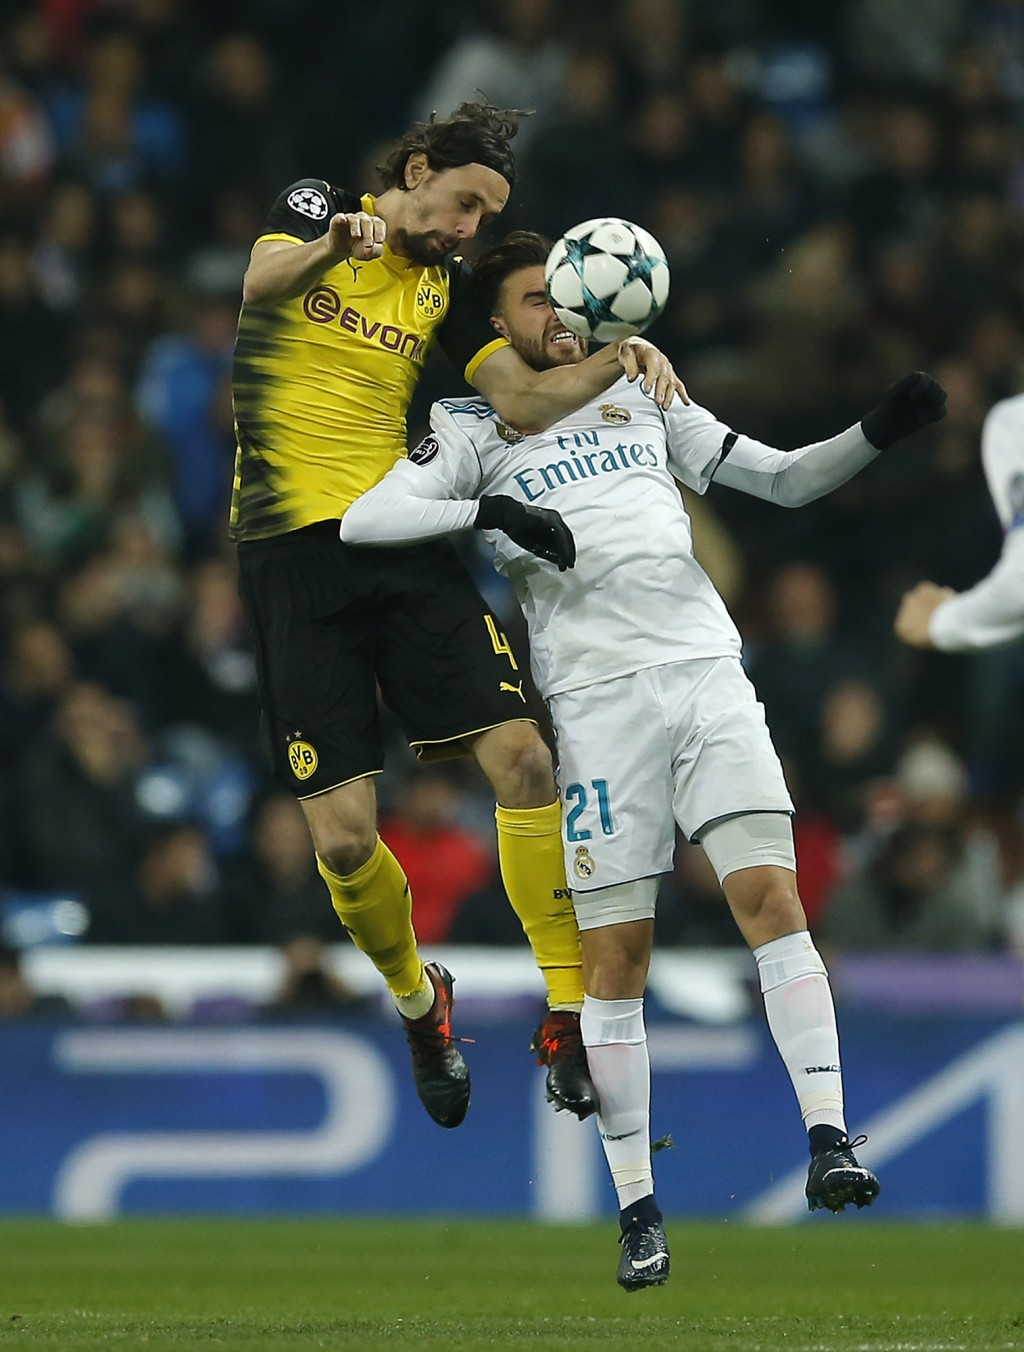 Dortmund's Neven Subotic, left, and Real Madrid's Borja Mayoral challenge for the ball during the Champions League Group H soccer match between Real M